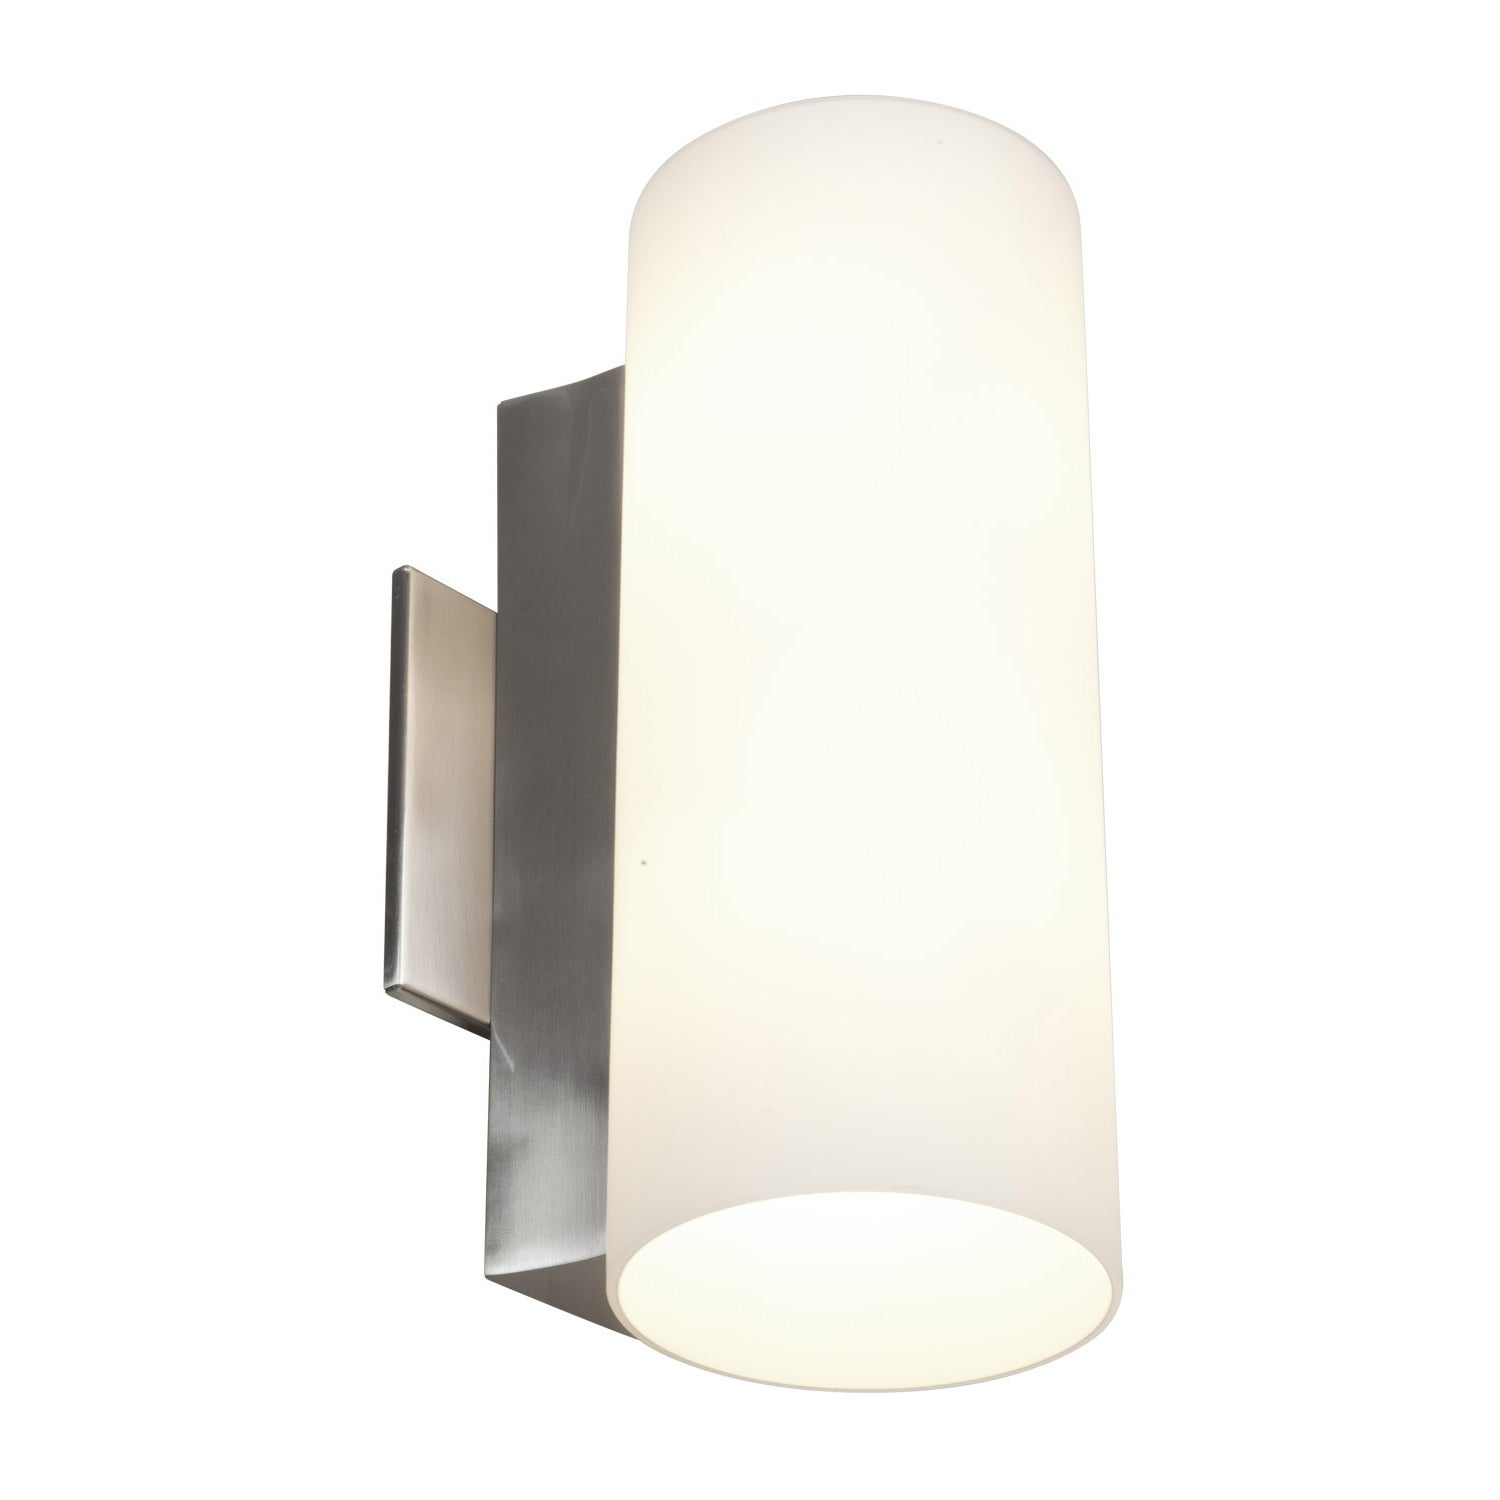 Wall Sconces & Vanity Lights  Shop The Best Brands Up To 10% Off   Overstock